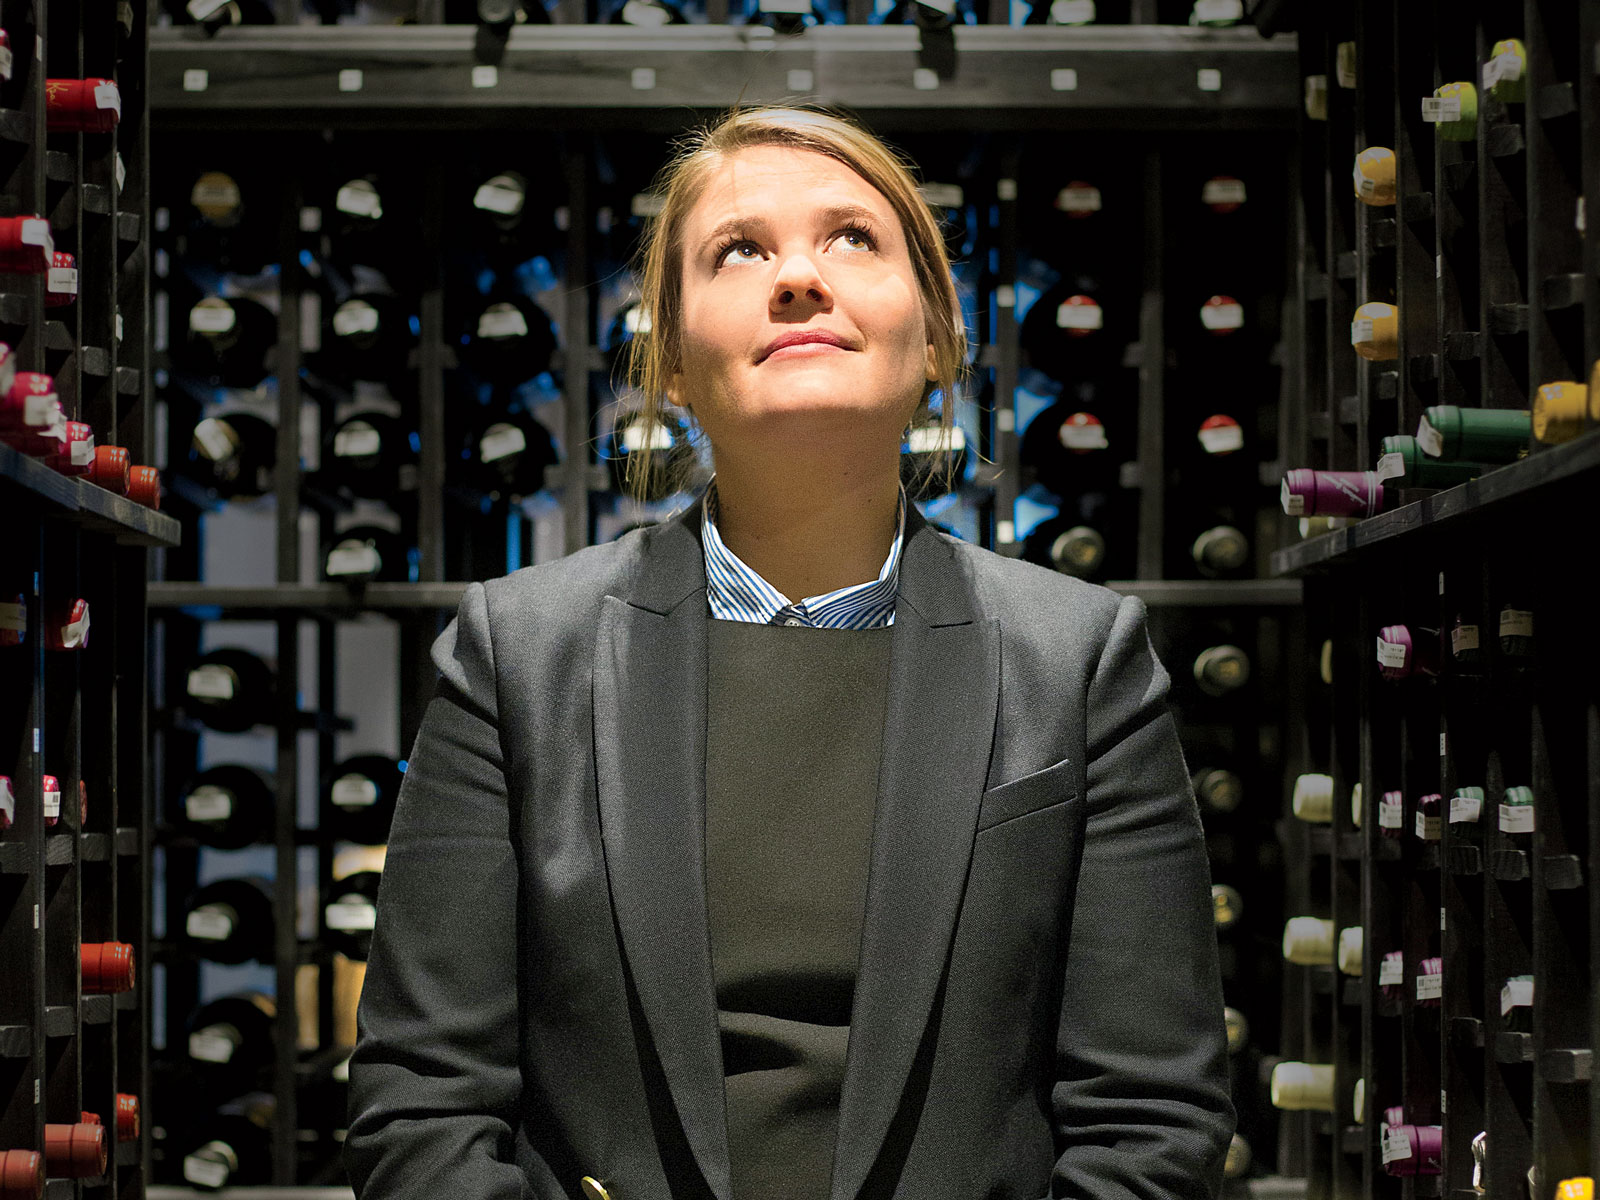 Liquid Diet: Sommelier Carlin Karr Crushes LaCroix and Tastes 50 Wines Before Dinner Service